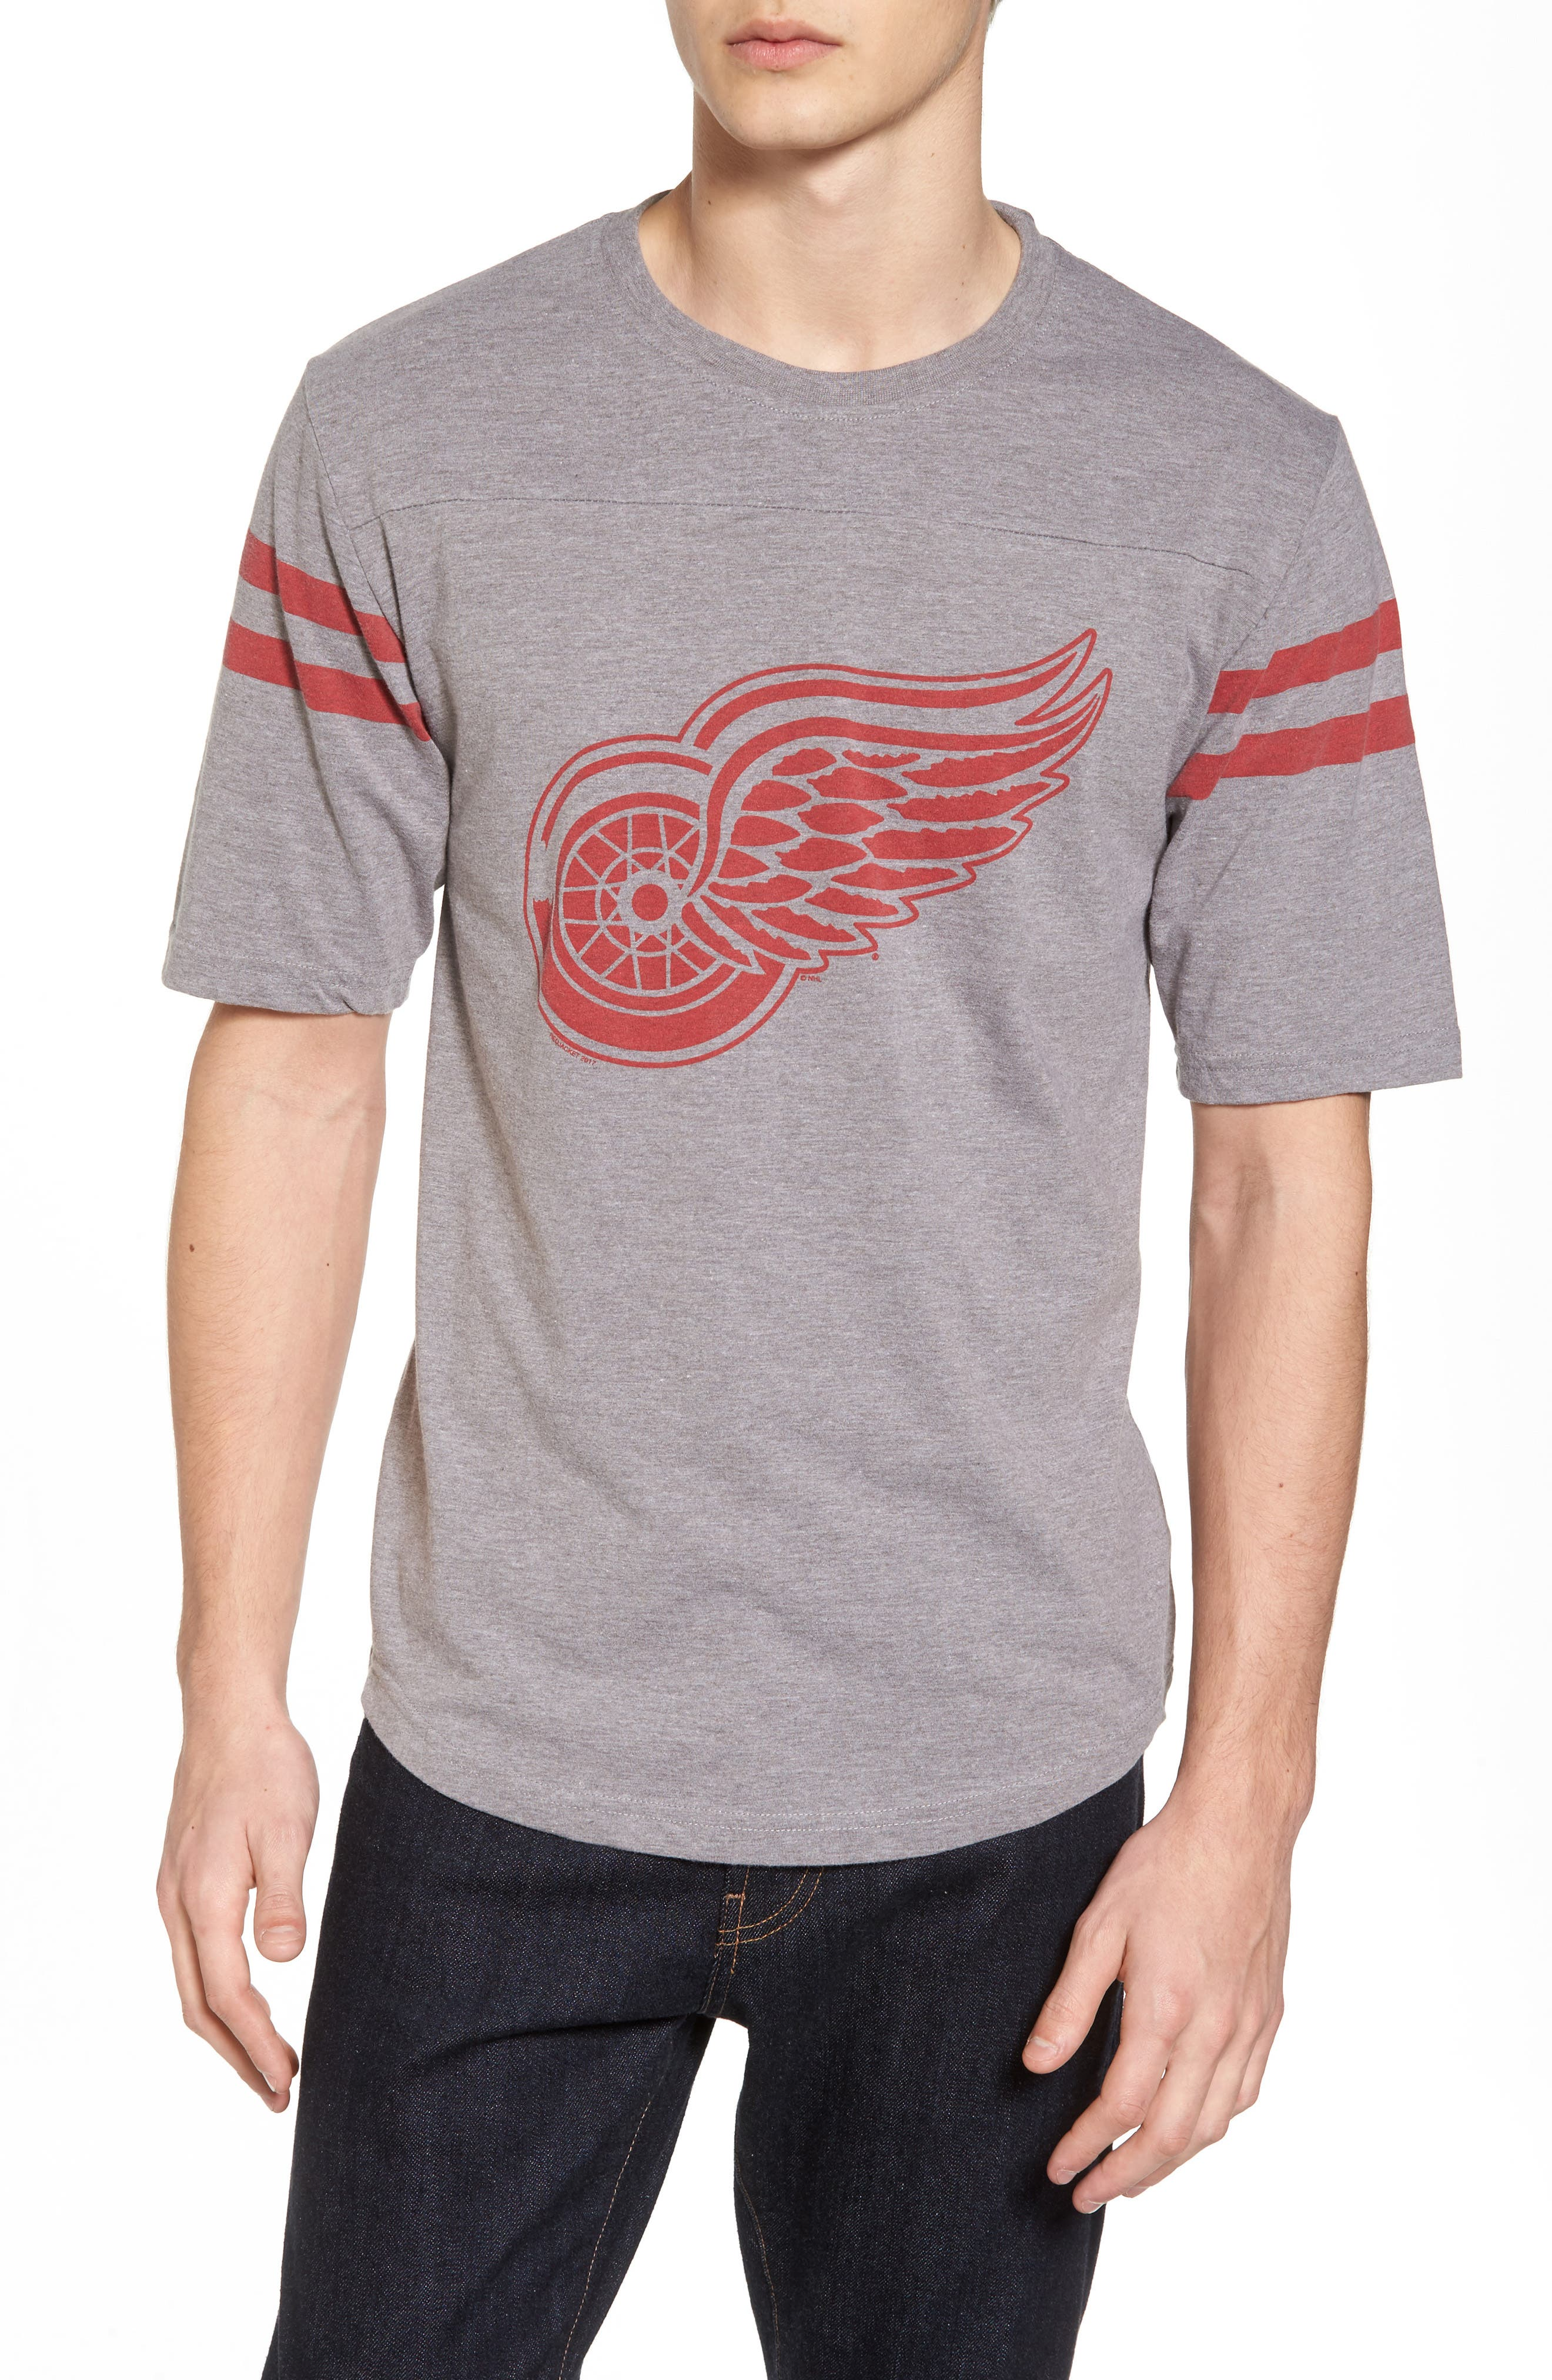 Crosby Detroit Red Wings T-Shirt,                         Main,                         color, Heather Grey